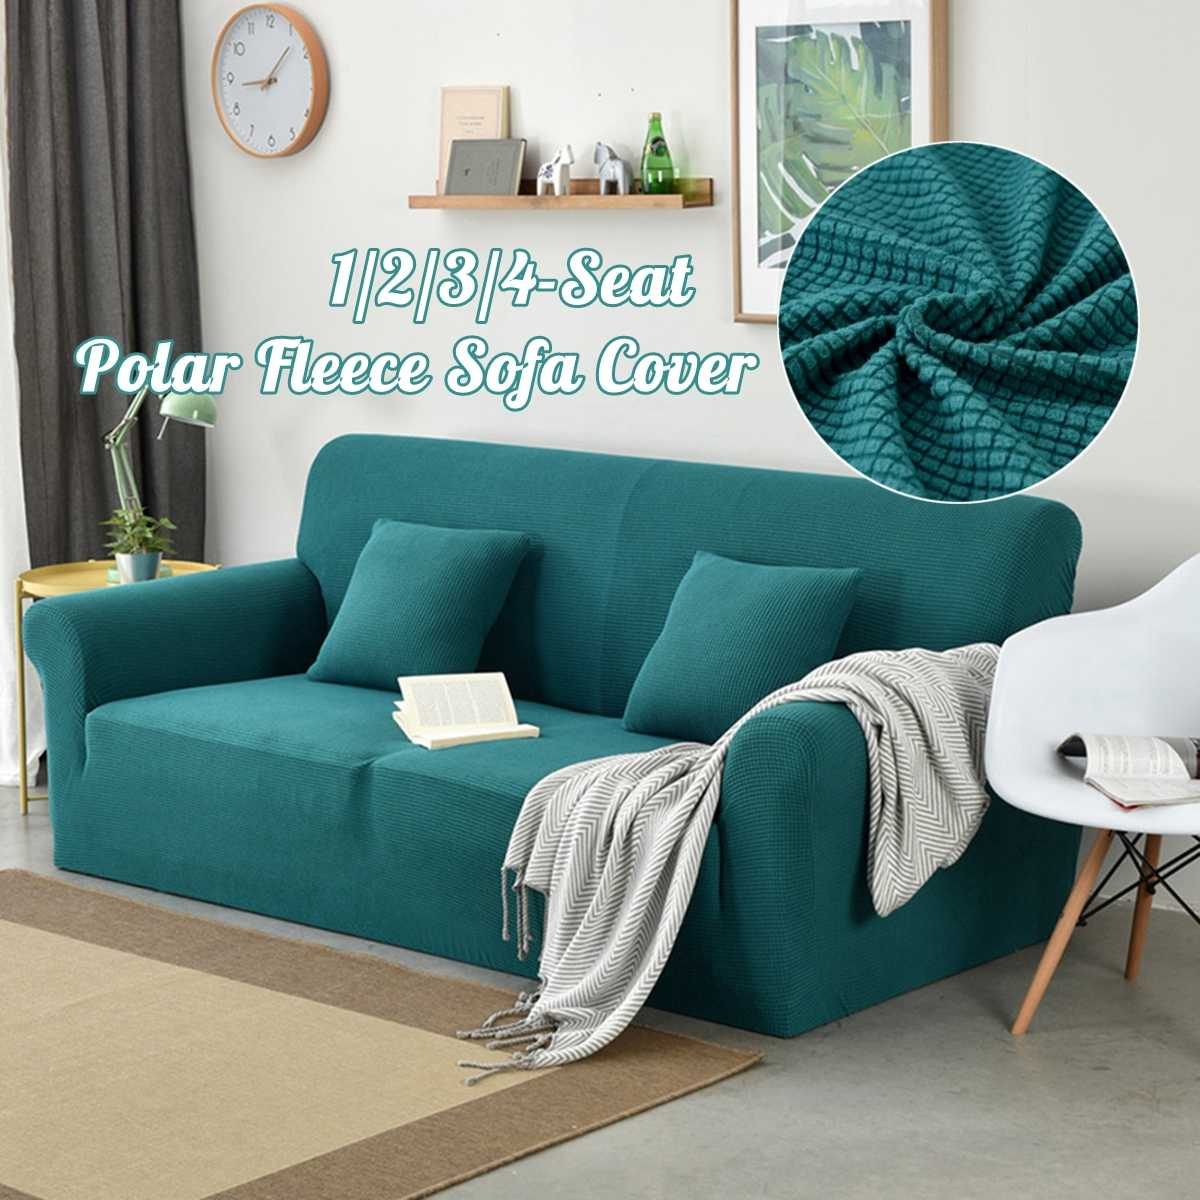 Home Textile Wliarleo Knitting Sofa Cover All-inclusive Elastic Sofa Bed Without Armrest High Quality Couch Cover Solid Folding Funda Sofa Beautiful In Colour Table & Sofa Linens